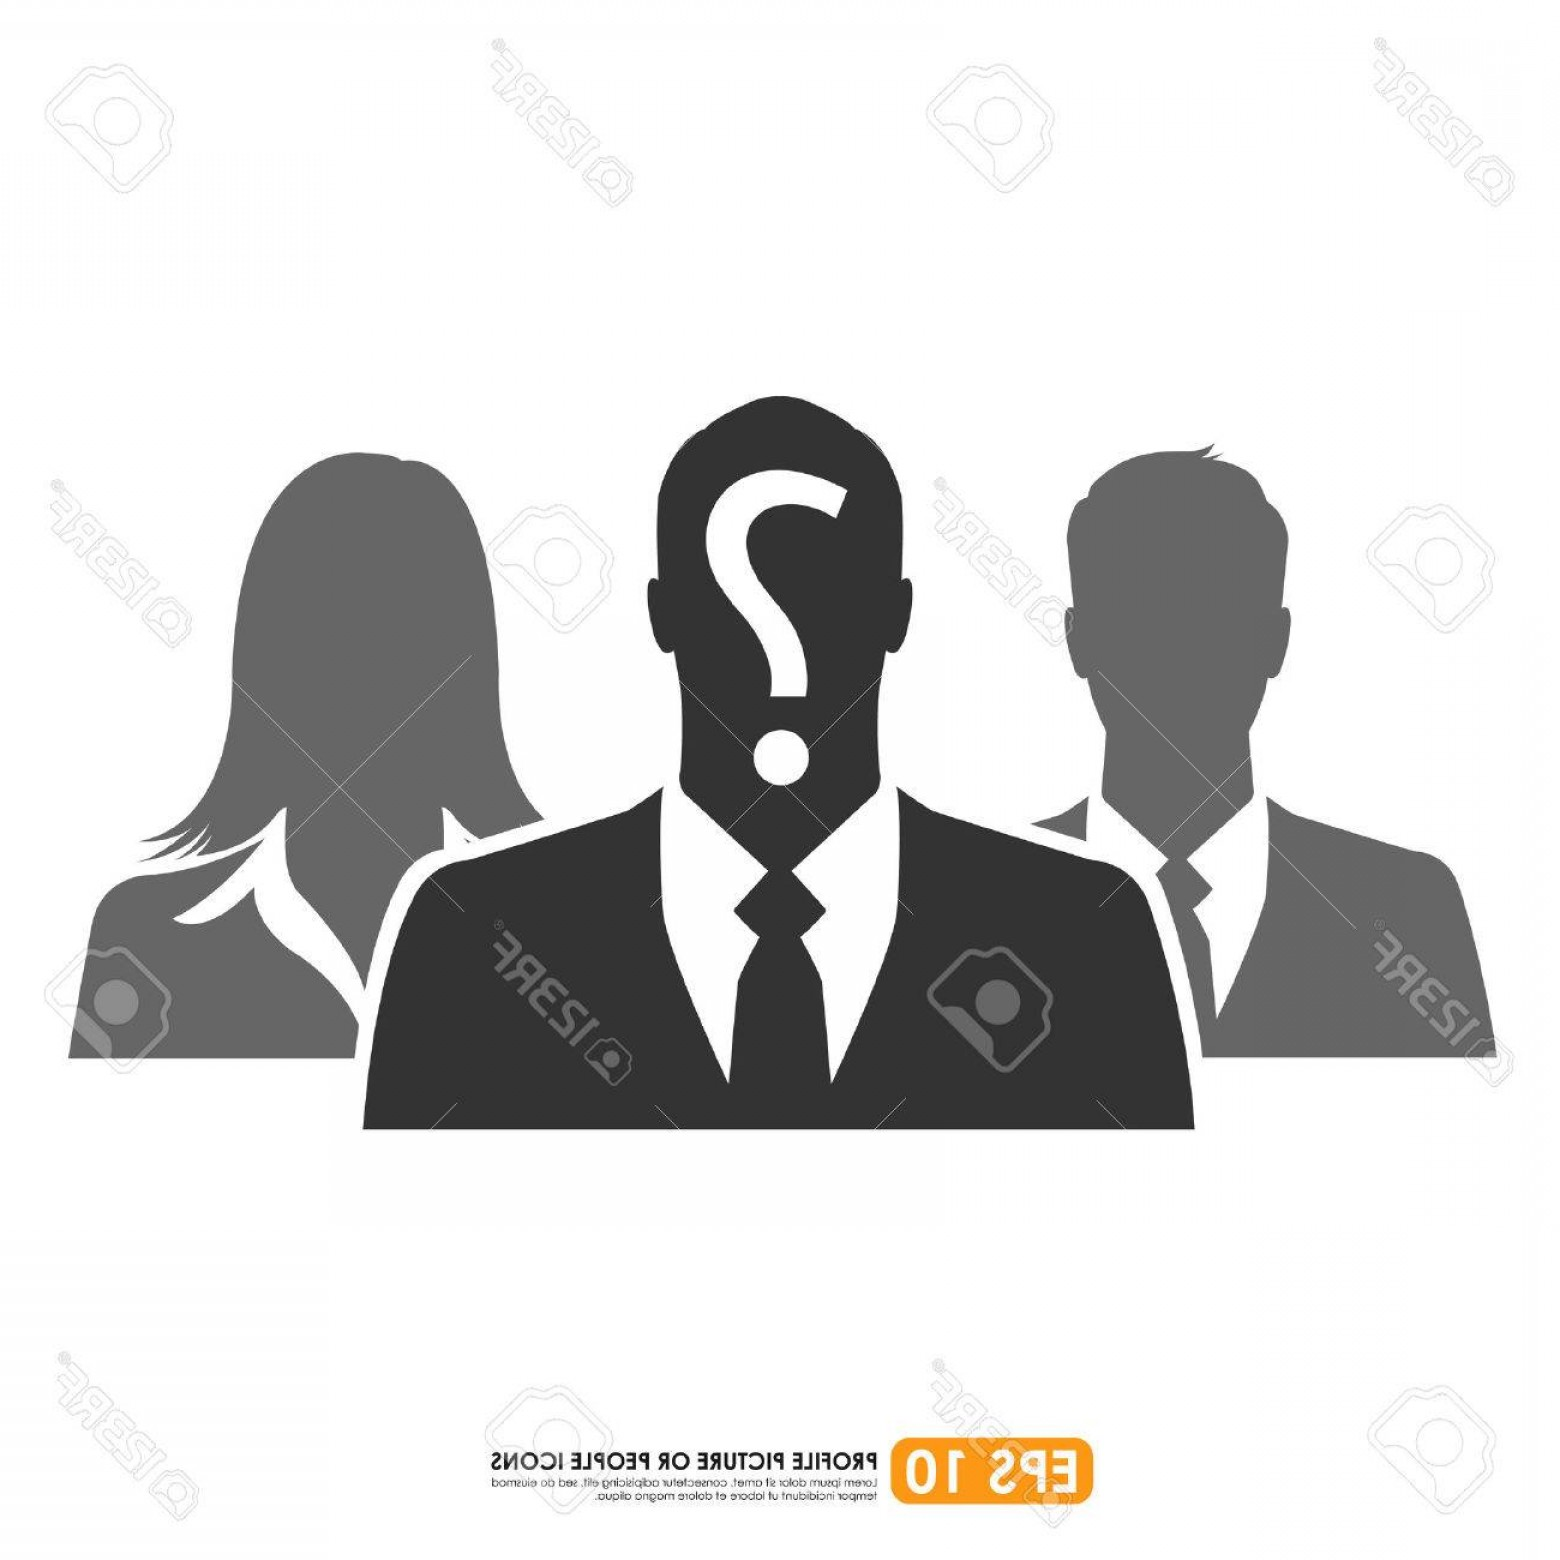 Free Vector Business People Icon: Photostock Vector Businesspeople Icon With Question Mark Sign